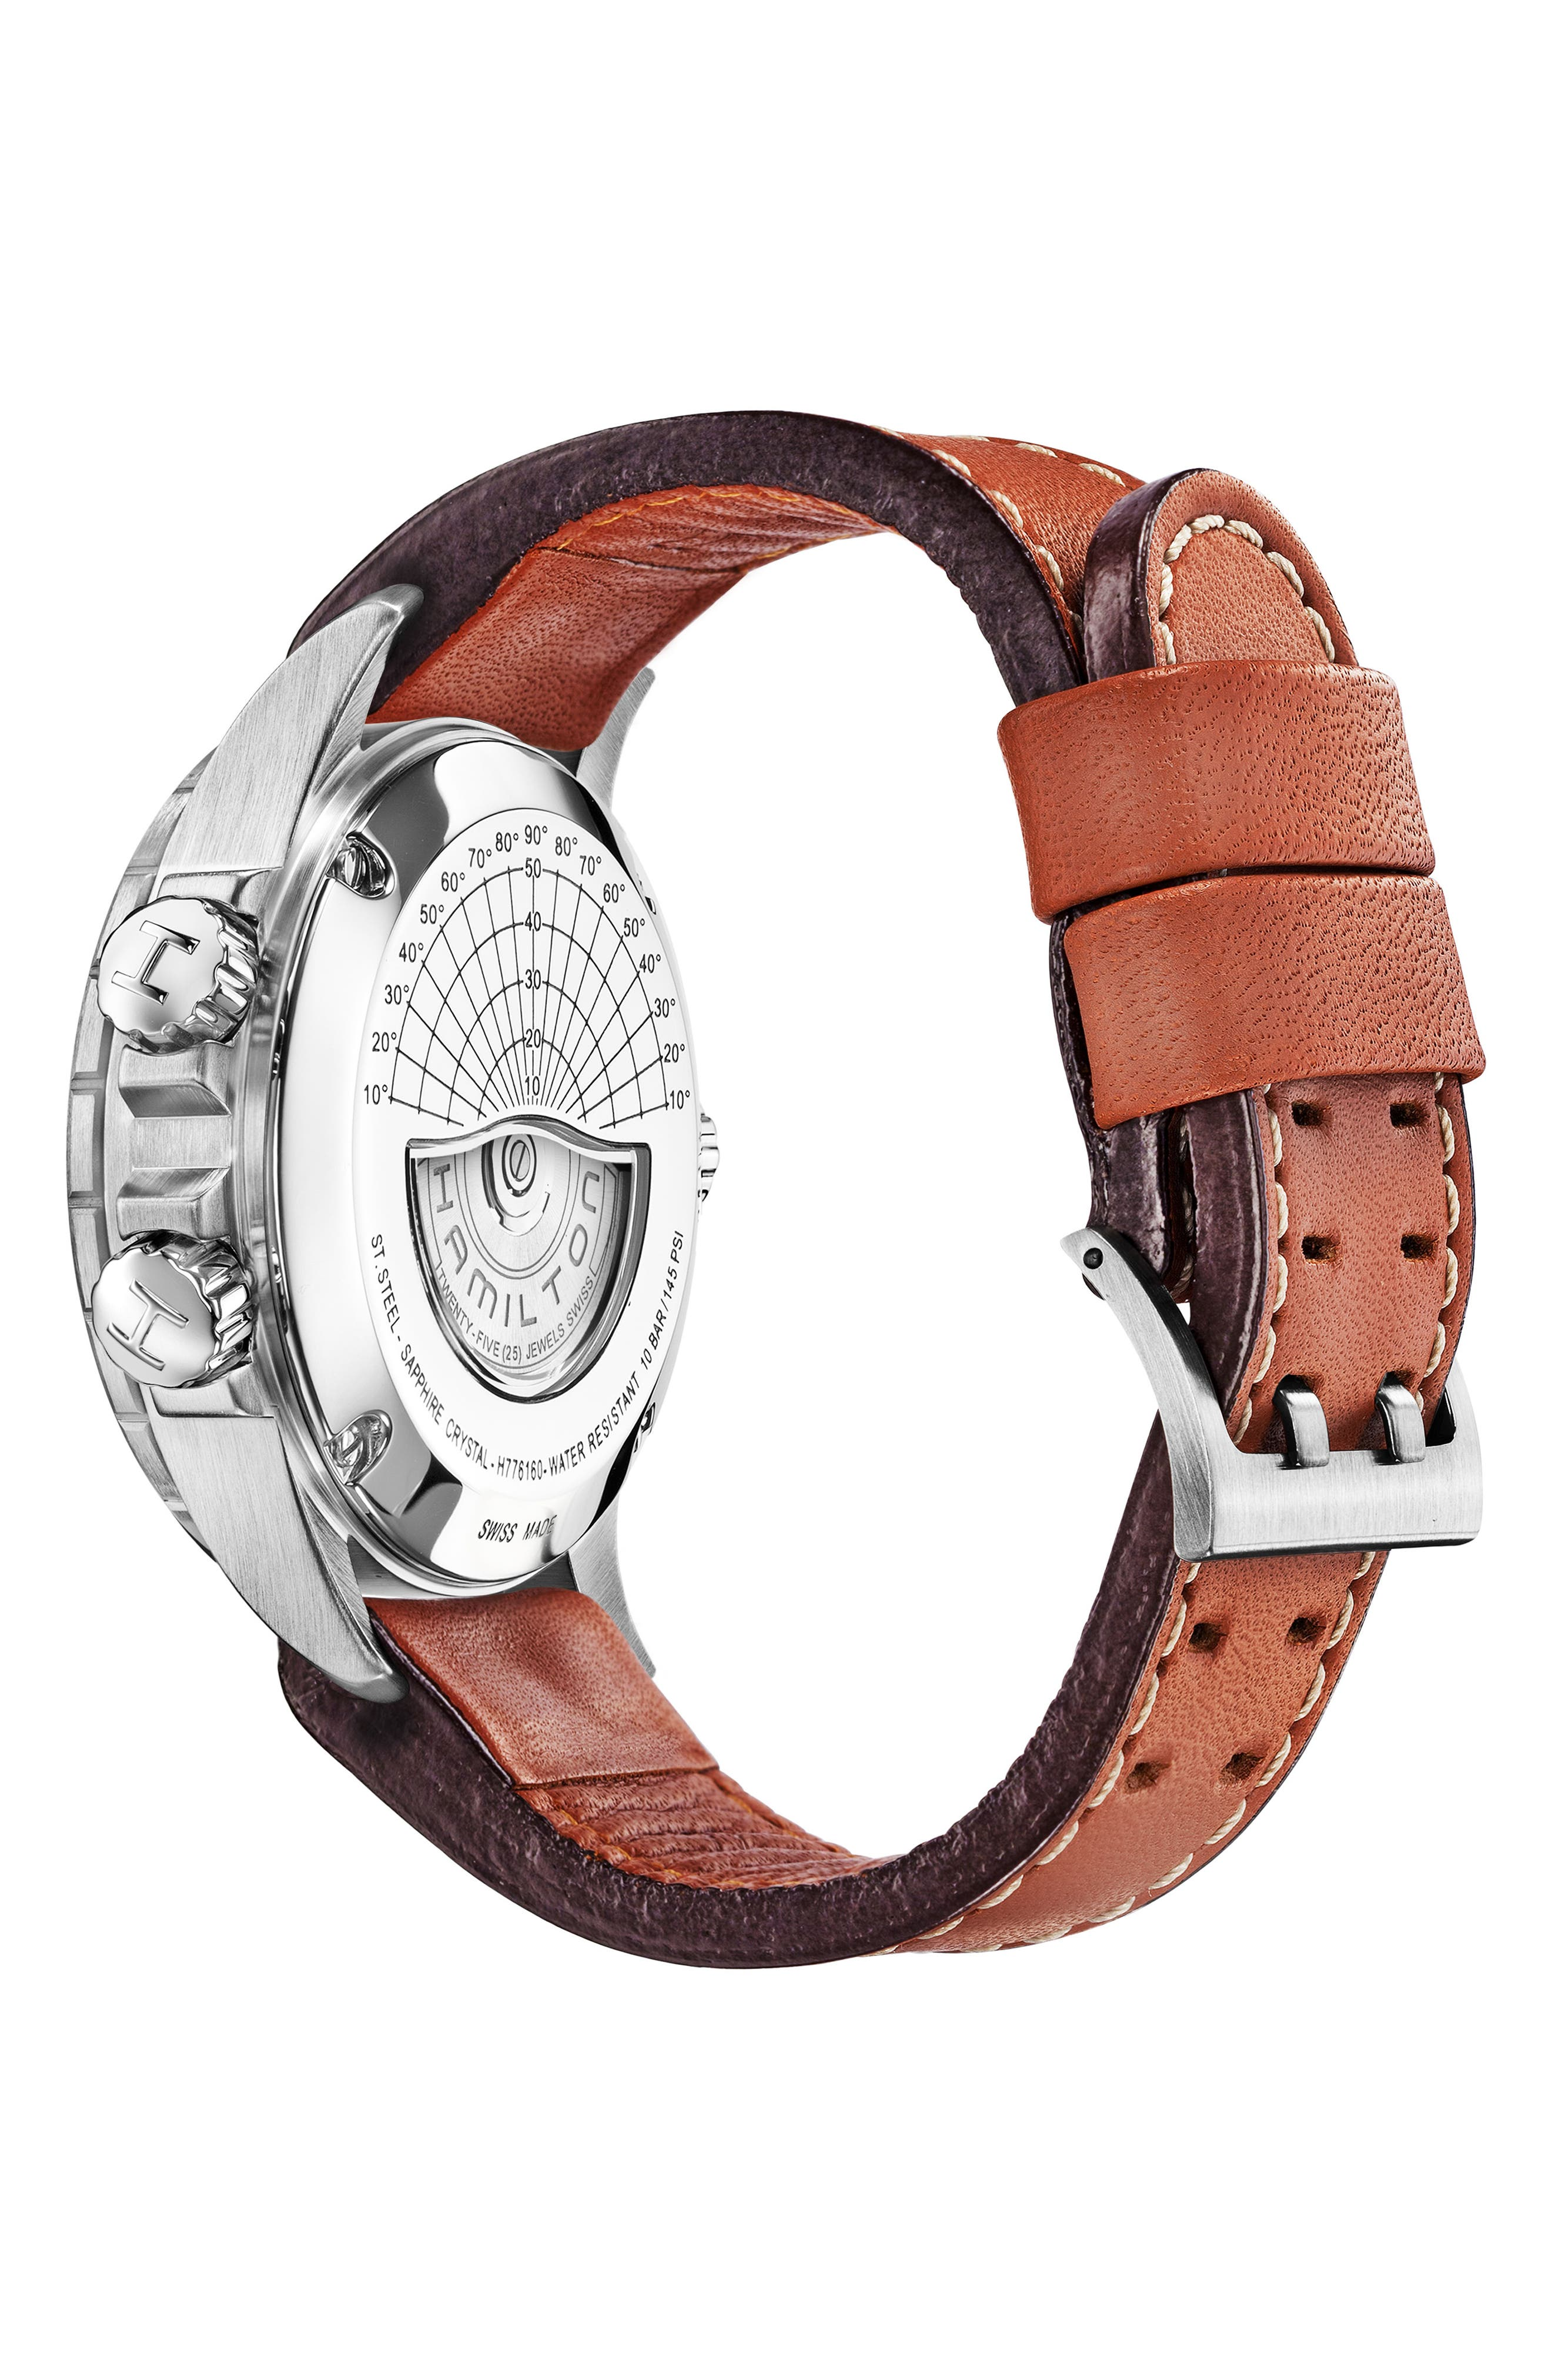 Khaki Aviation X-Wind Automatic Chronograph Leather Strap Watch, 44mm,                             Alternate thumbnail 3, color,                             Brown/ Black/ Silver